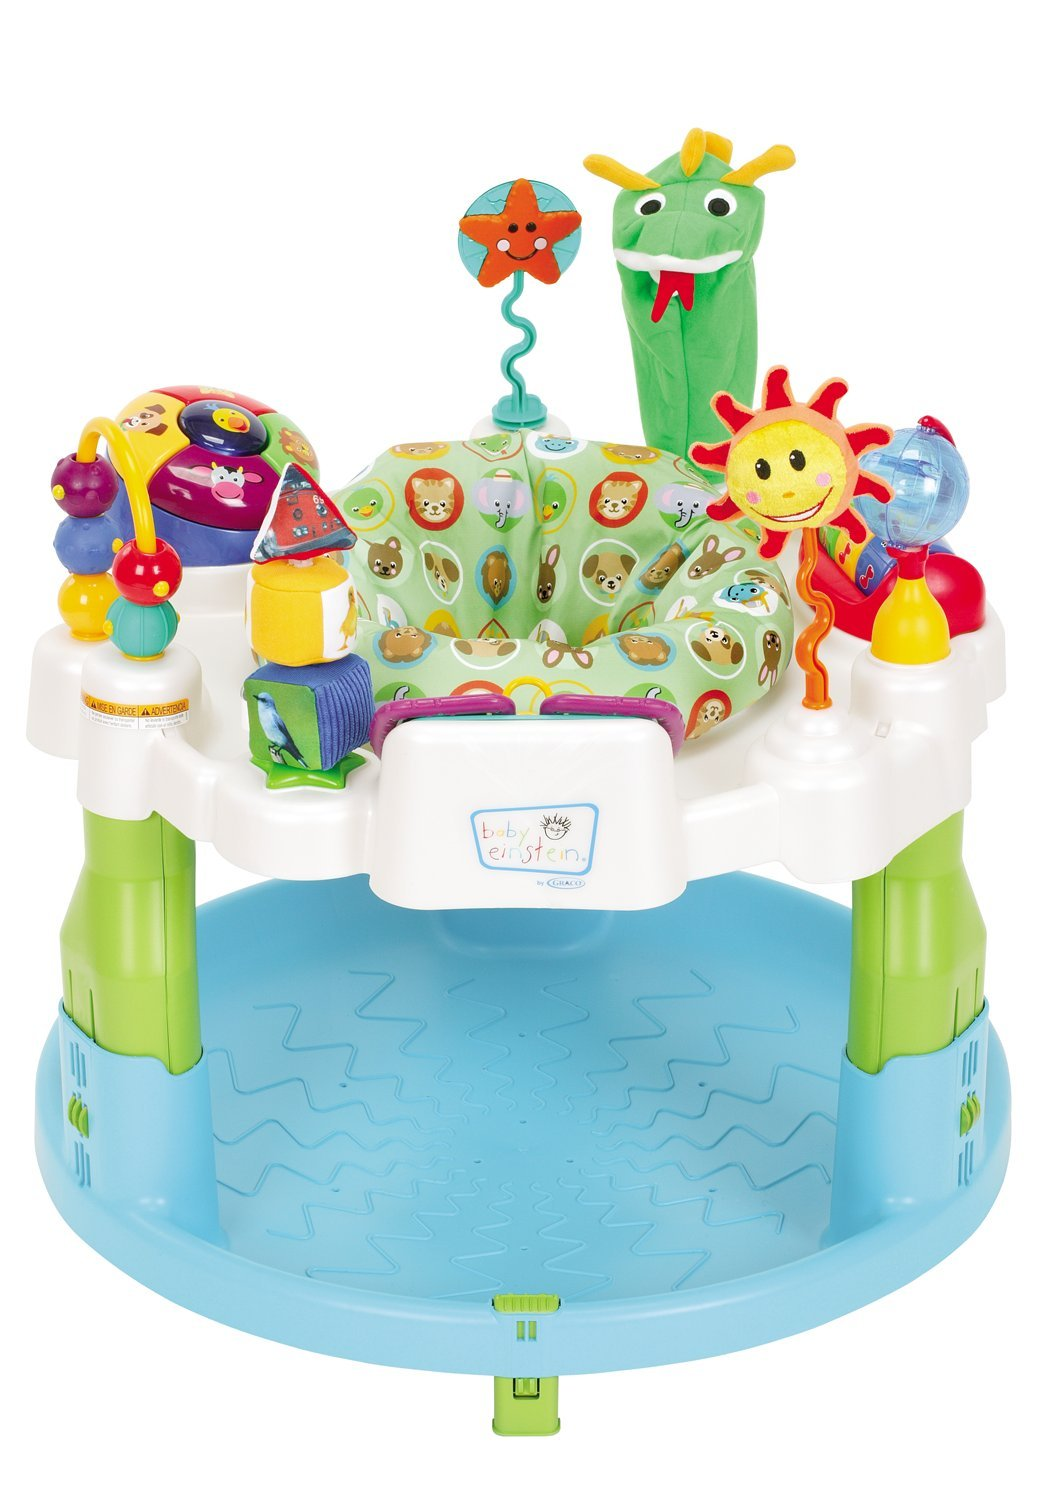 Amazon.com : Baby Einstein Discover and Play Activity Center ...